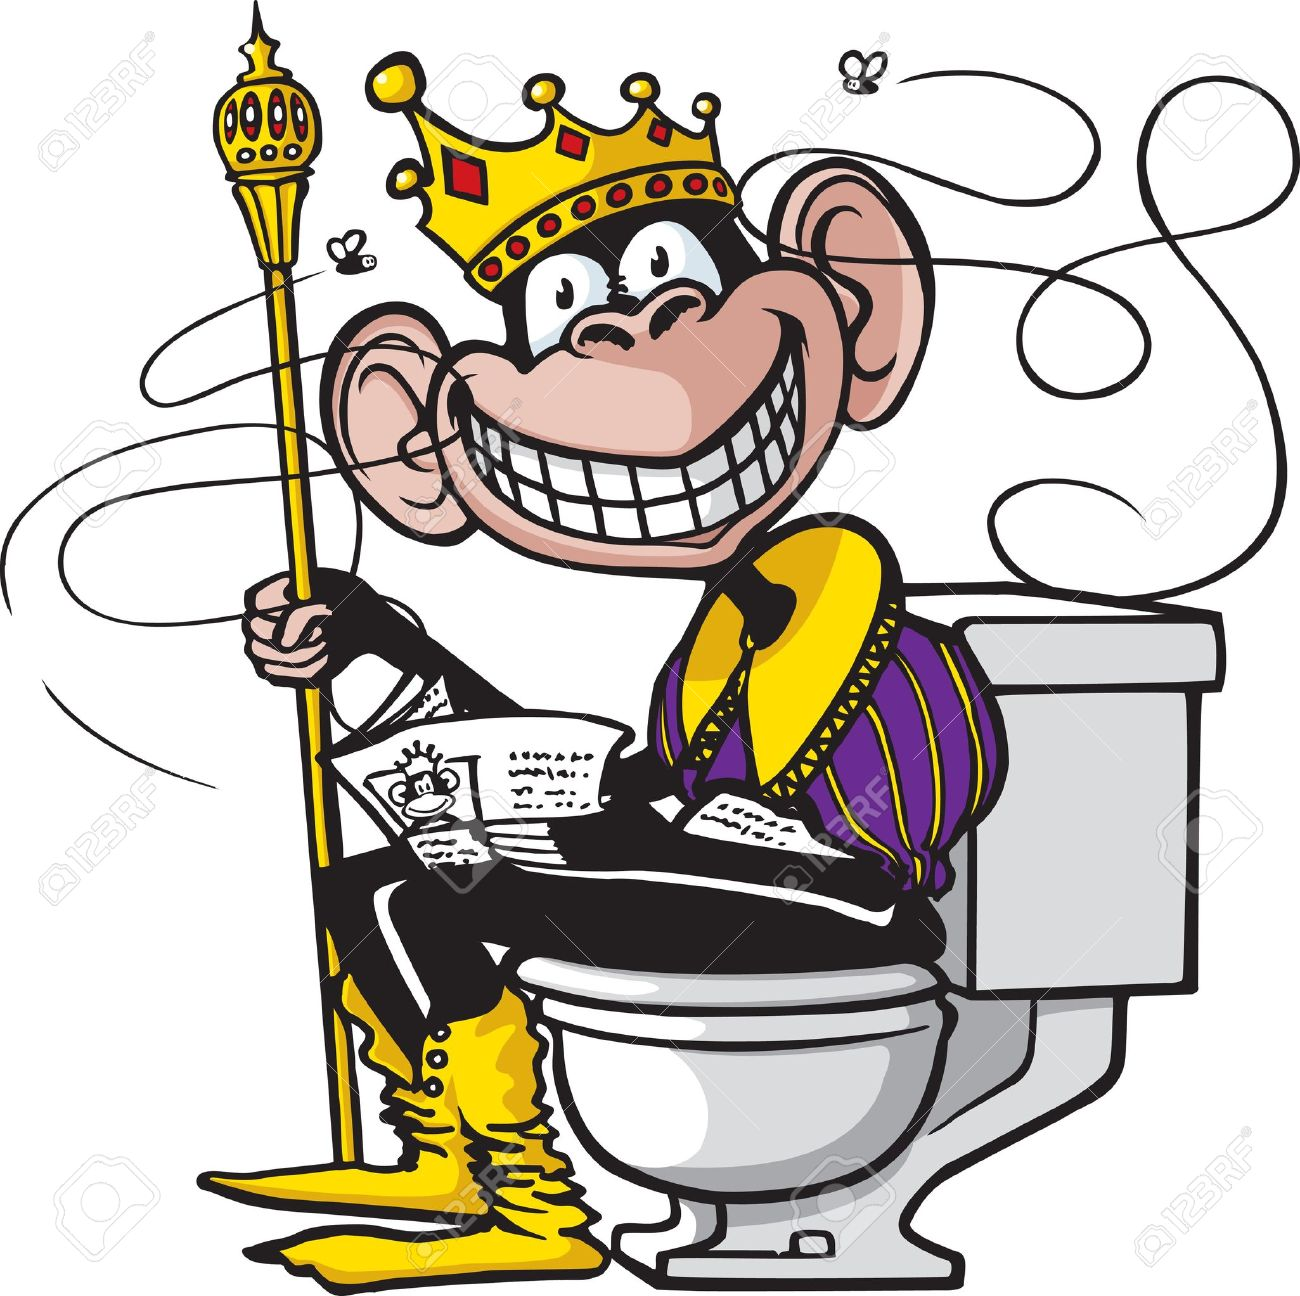 A Cartoon Of Chimpanzee Sitting On Toilet Stock Vector